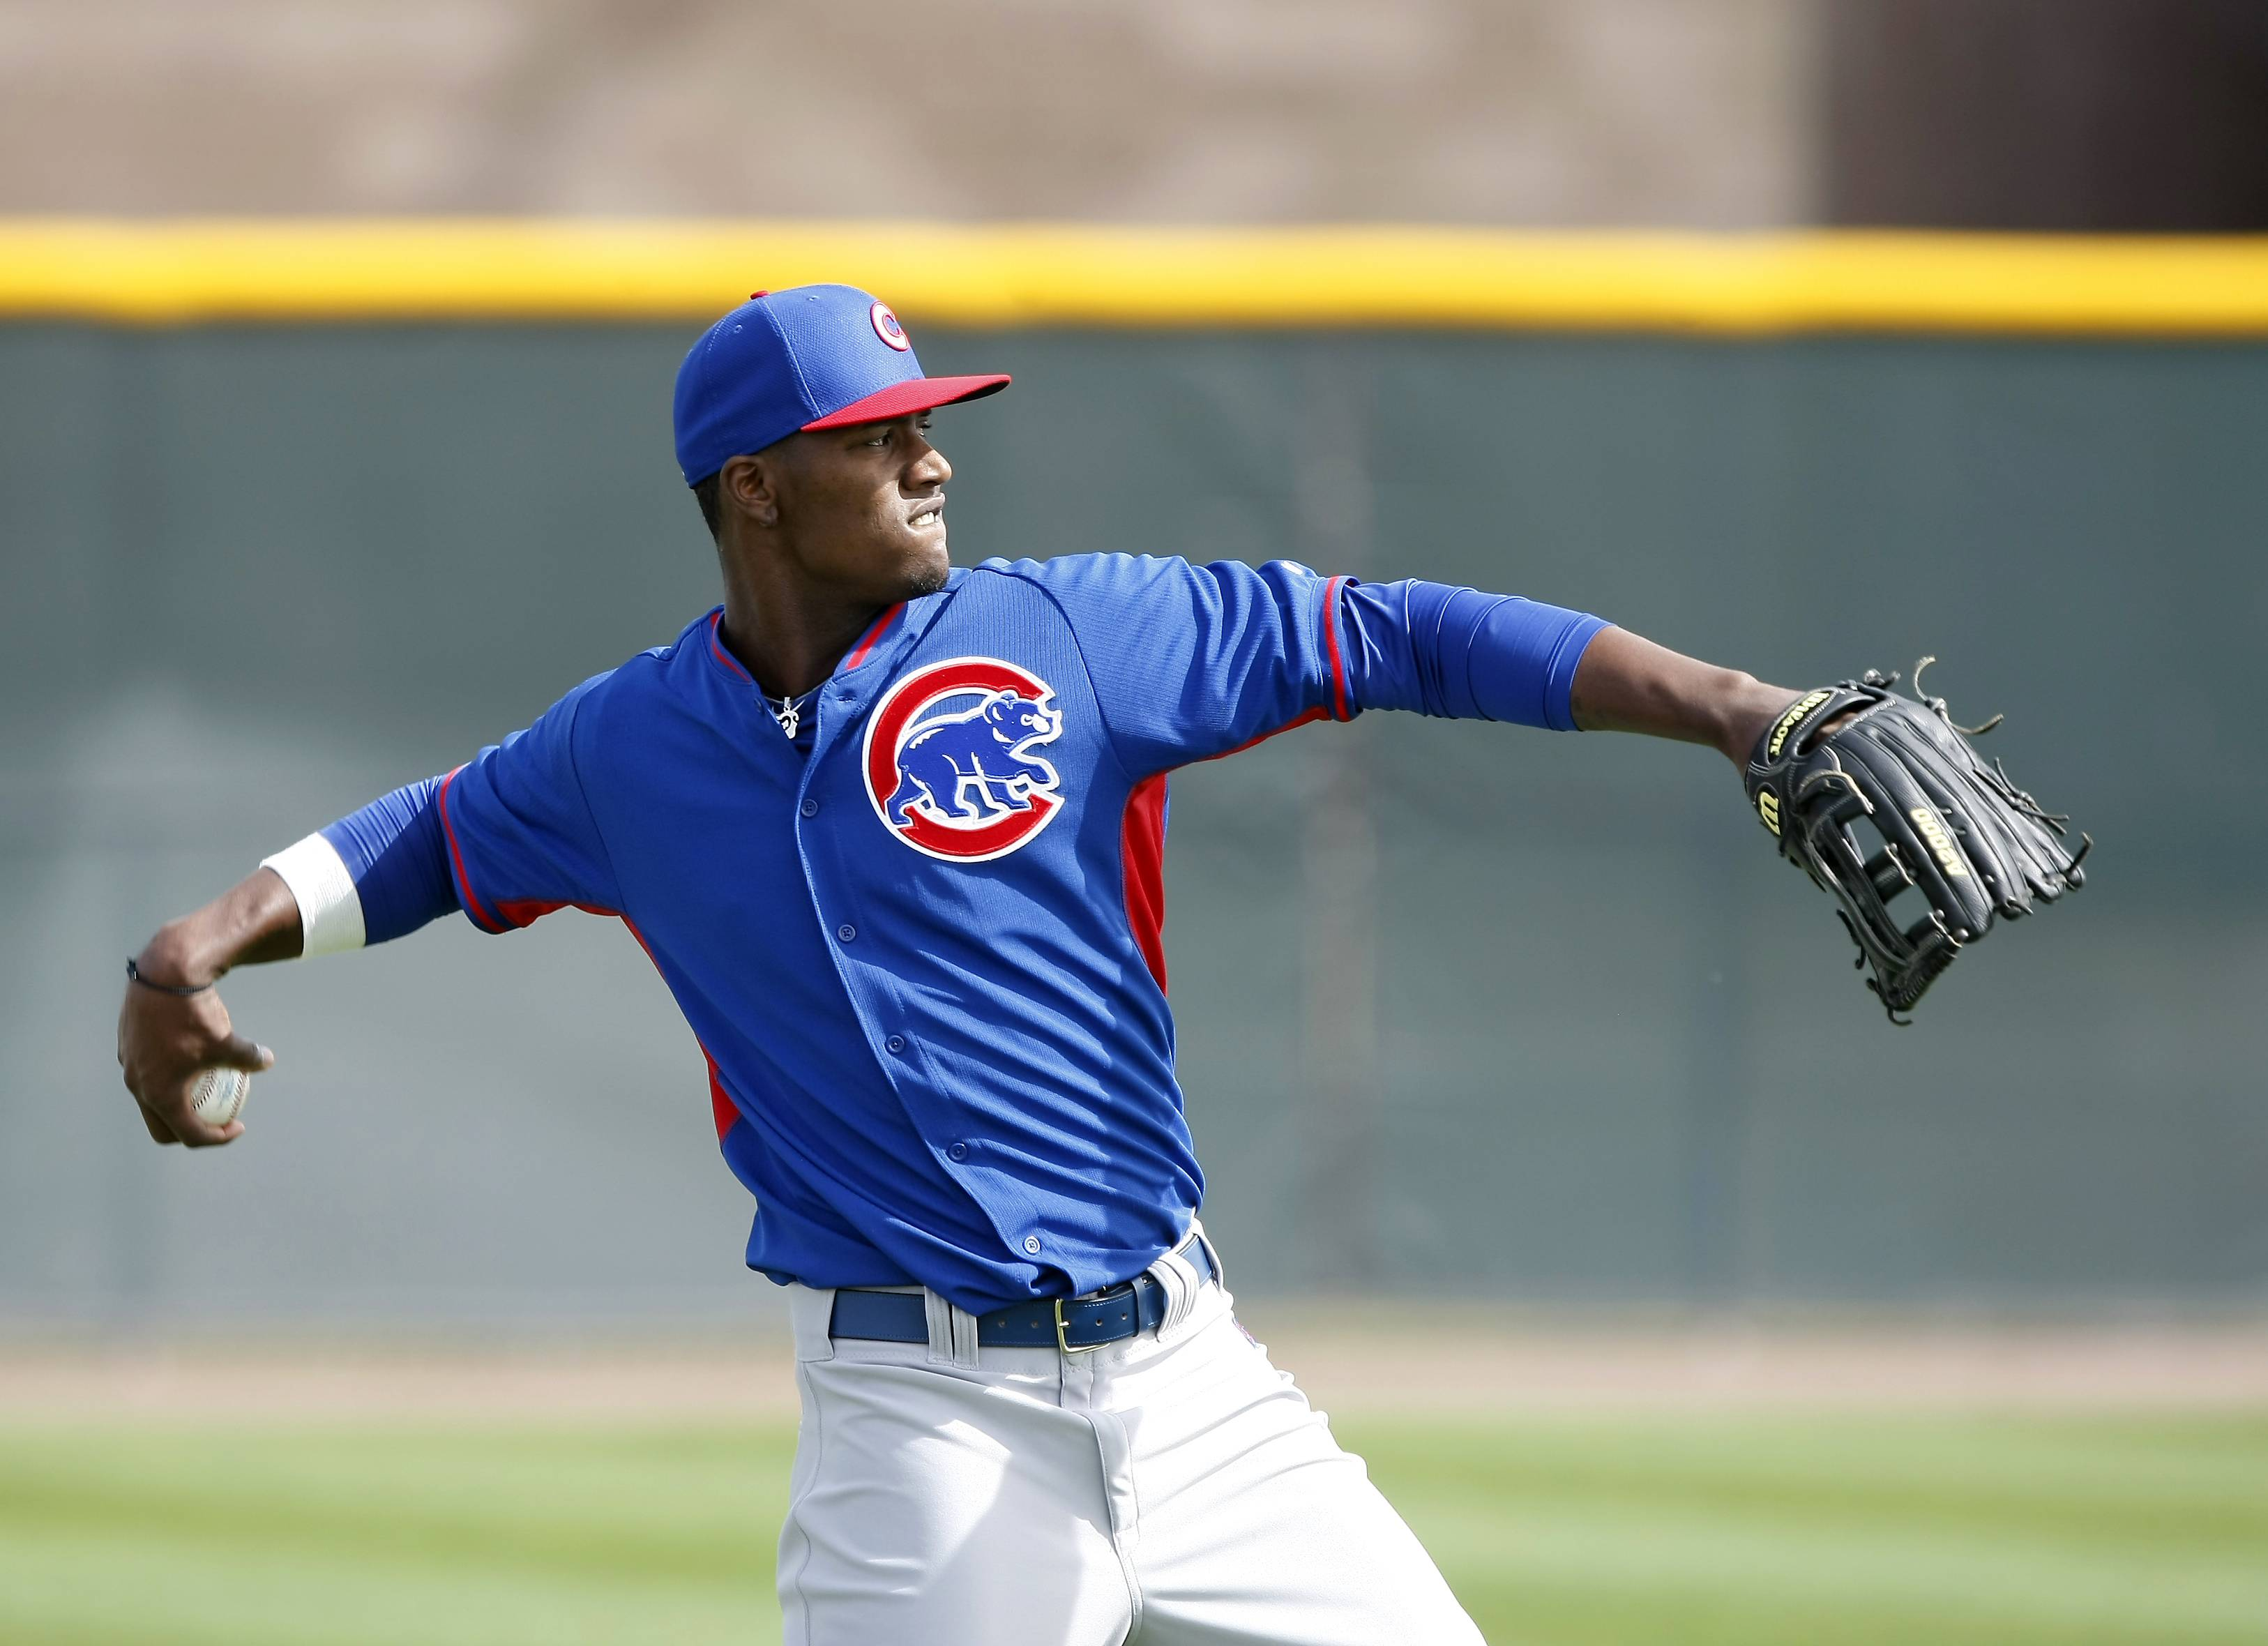 Junior Lake made a solid impression last season and should start in left field for the Cubs this season.